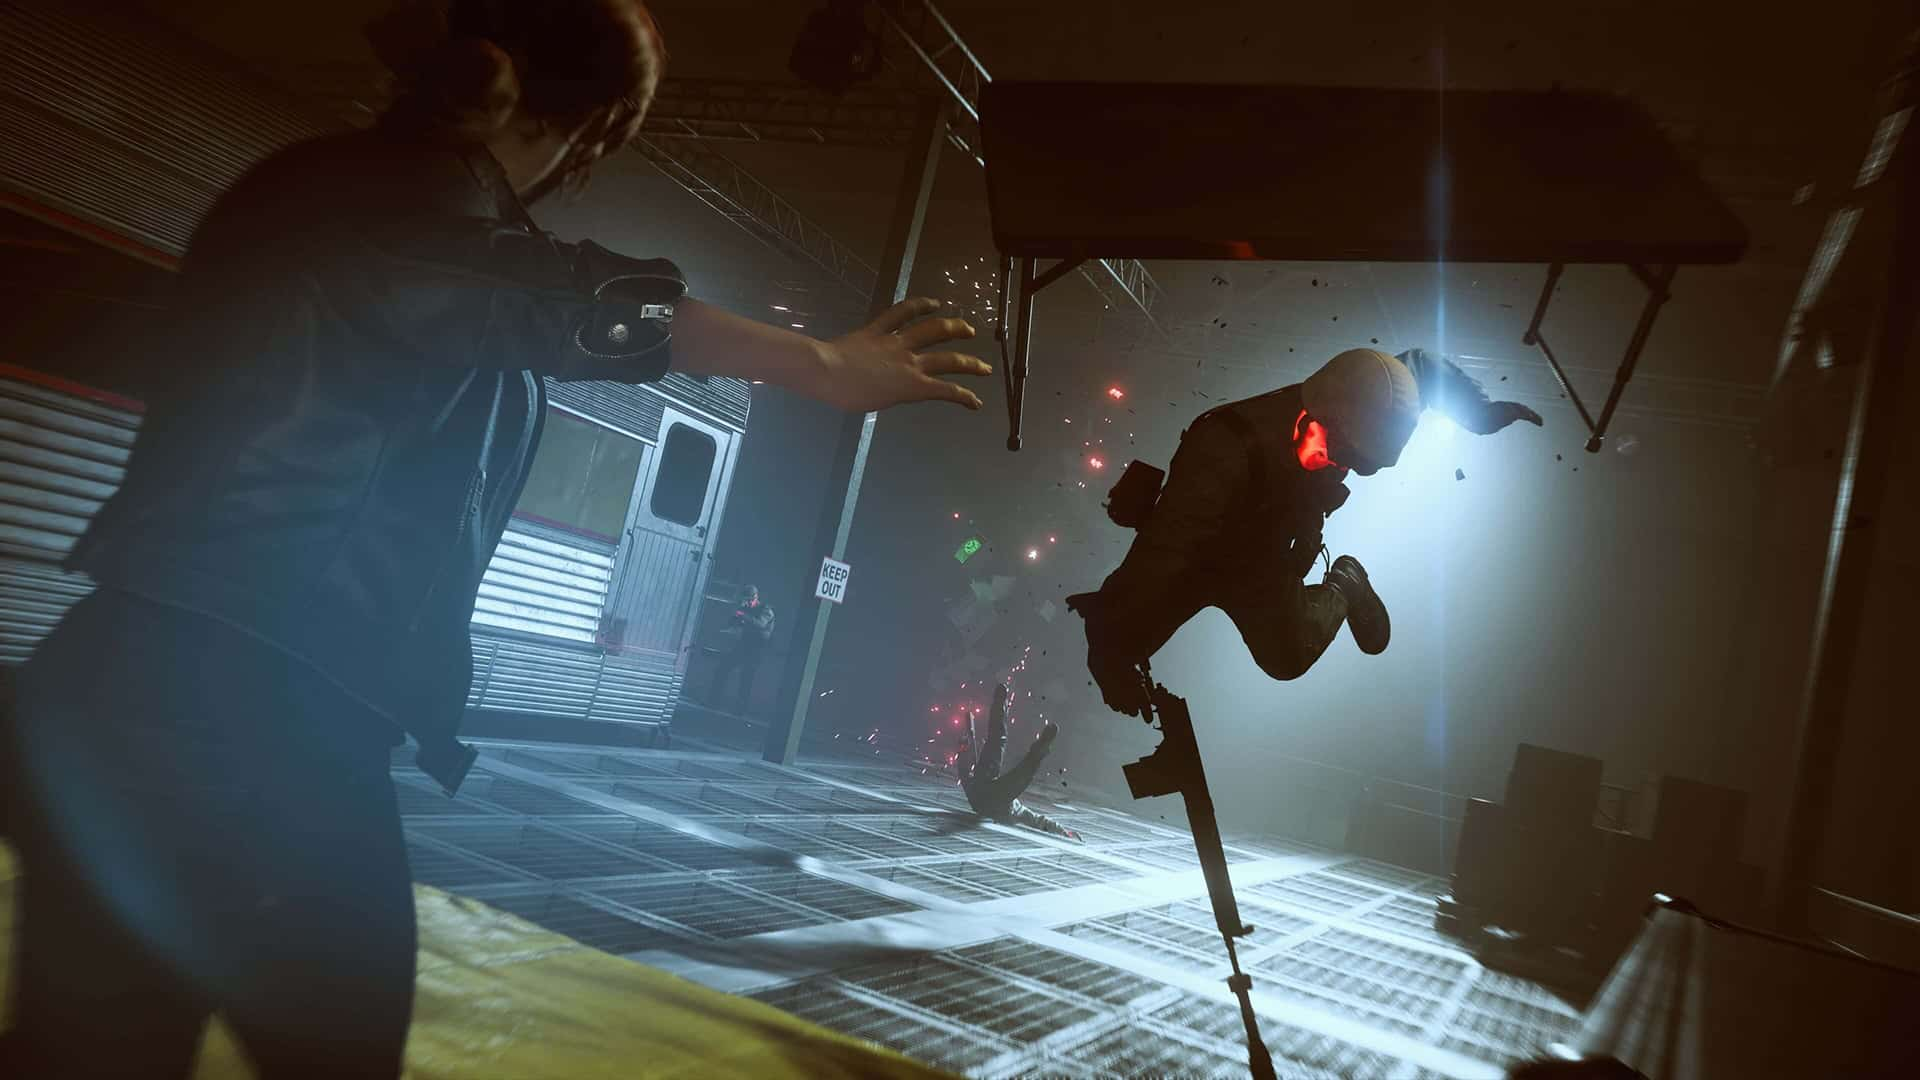 Remedy Entertainment Control: AWE Alan Wake expansion DLC embraces survival horror to great effect for the Remedy Connected Universe